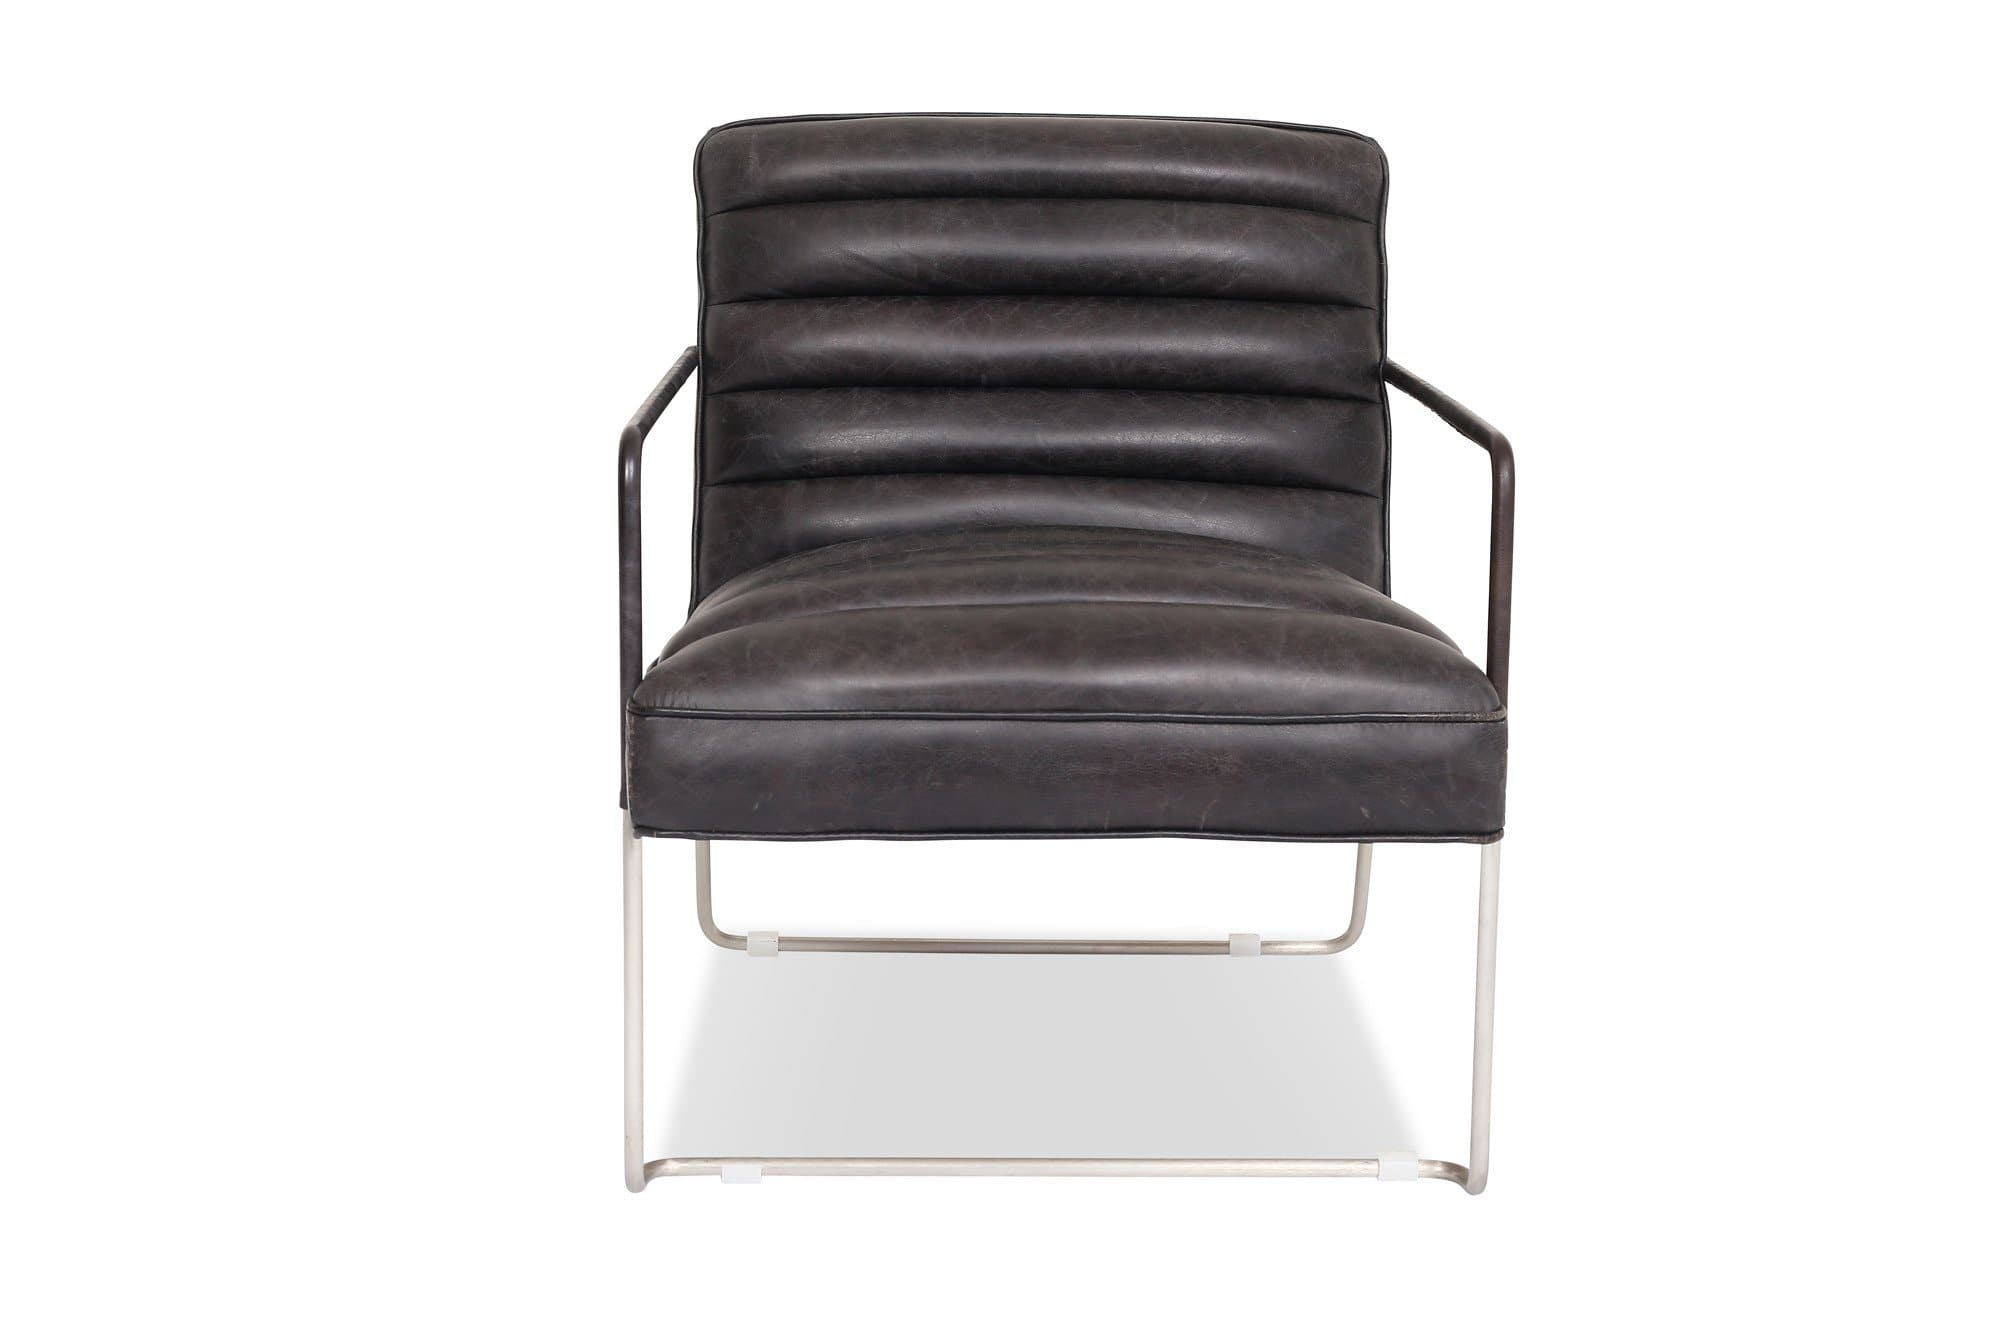 Fine Kennedy Lounge Chair Edloe Finch Furniture Co Ocoug Best Dining Table And Chair Ideas Images Ocougorg